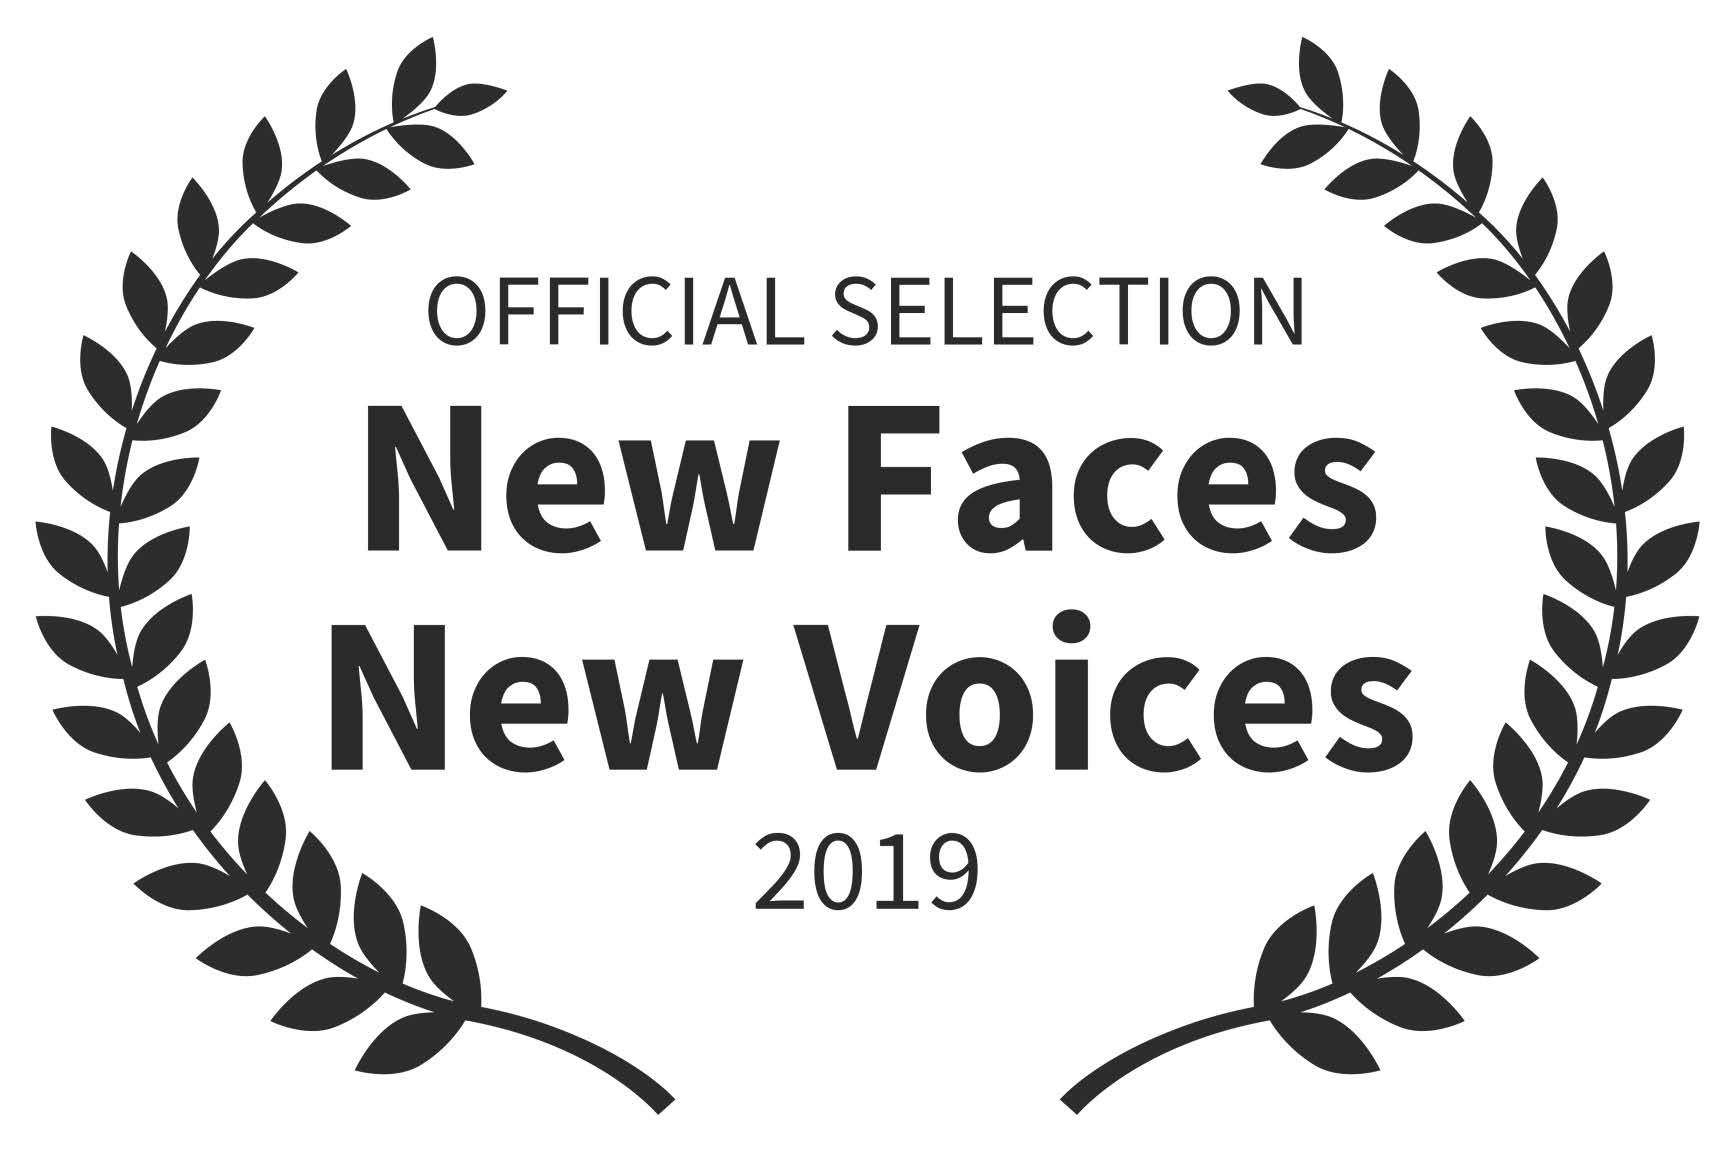 OFFICIAL SELECTION - New Faces New Voices - 2019.jpg